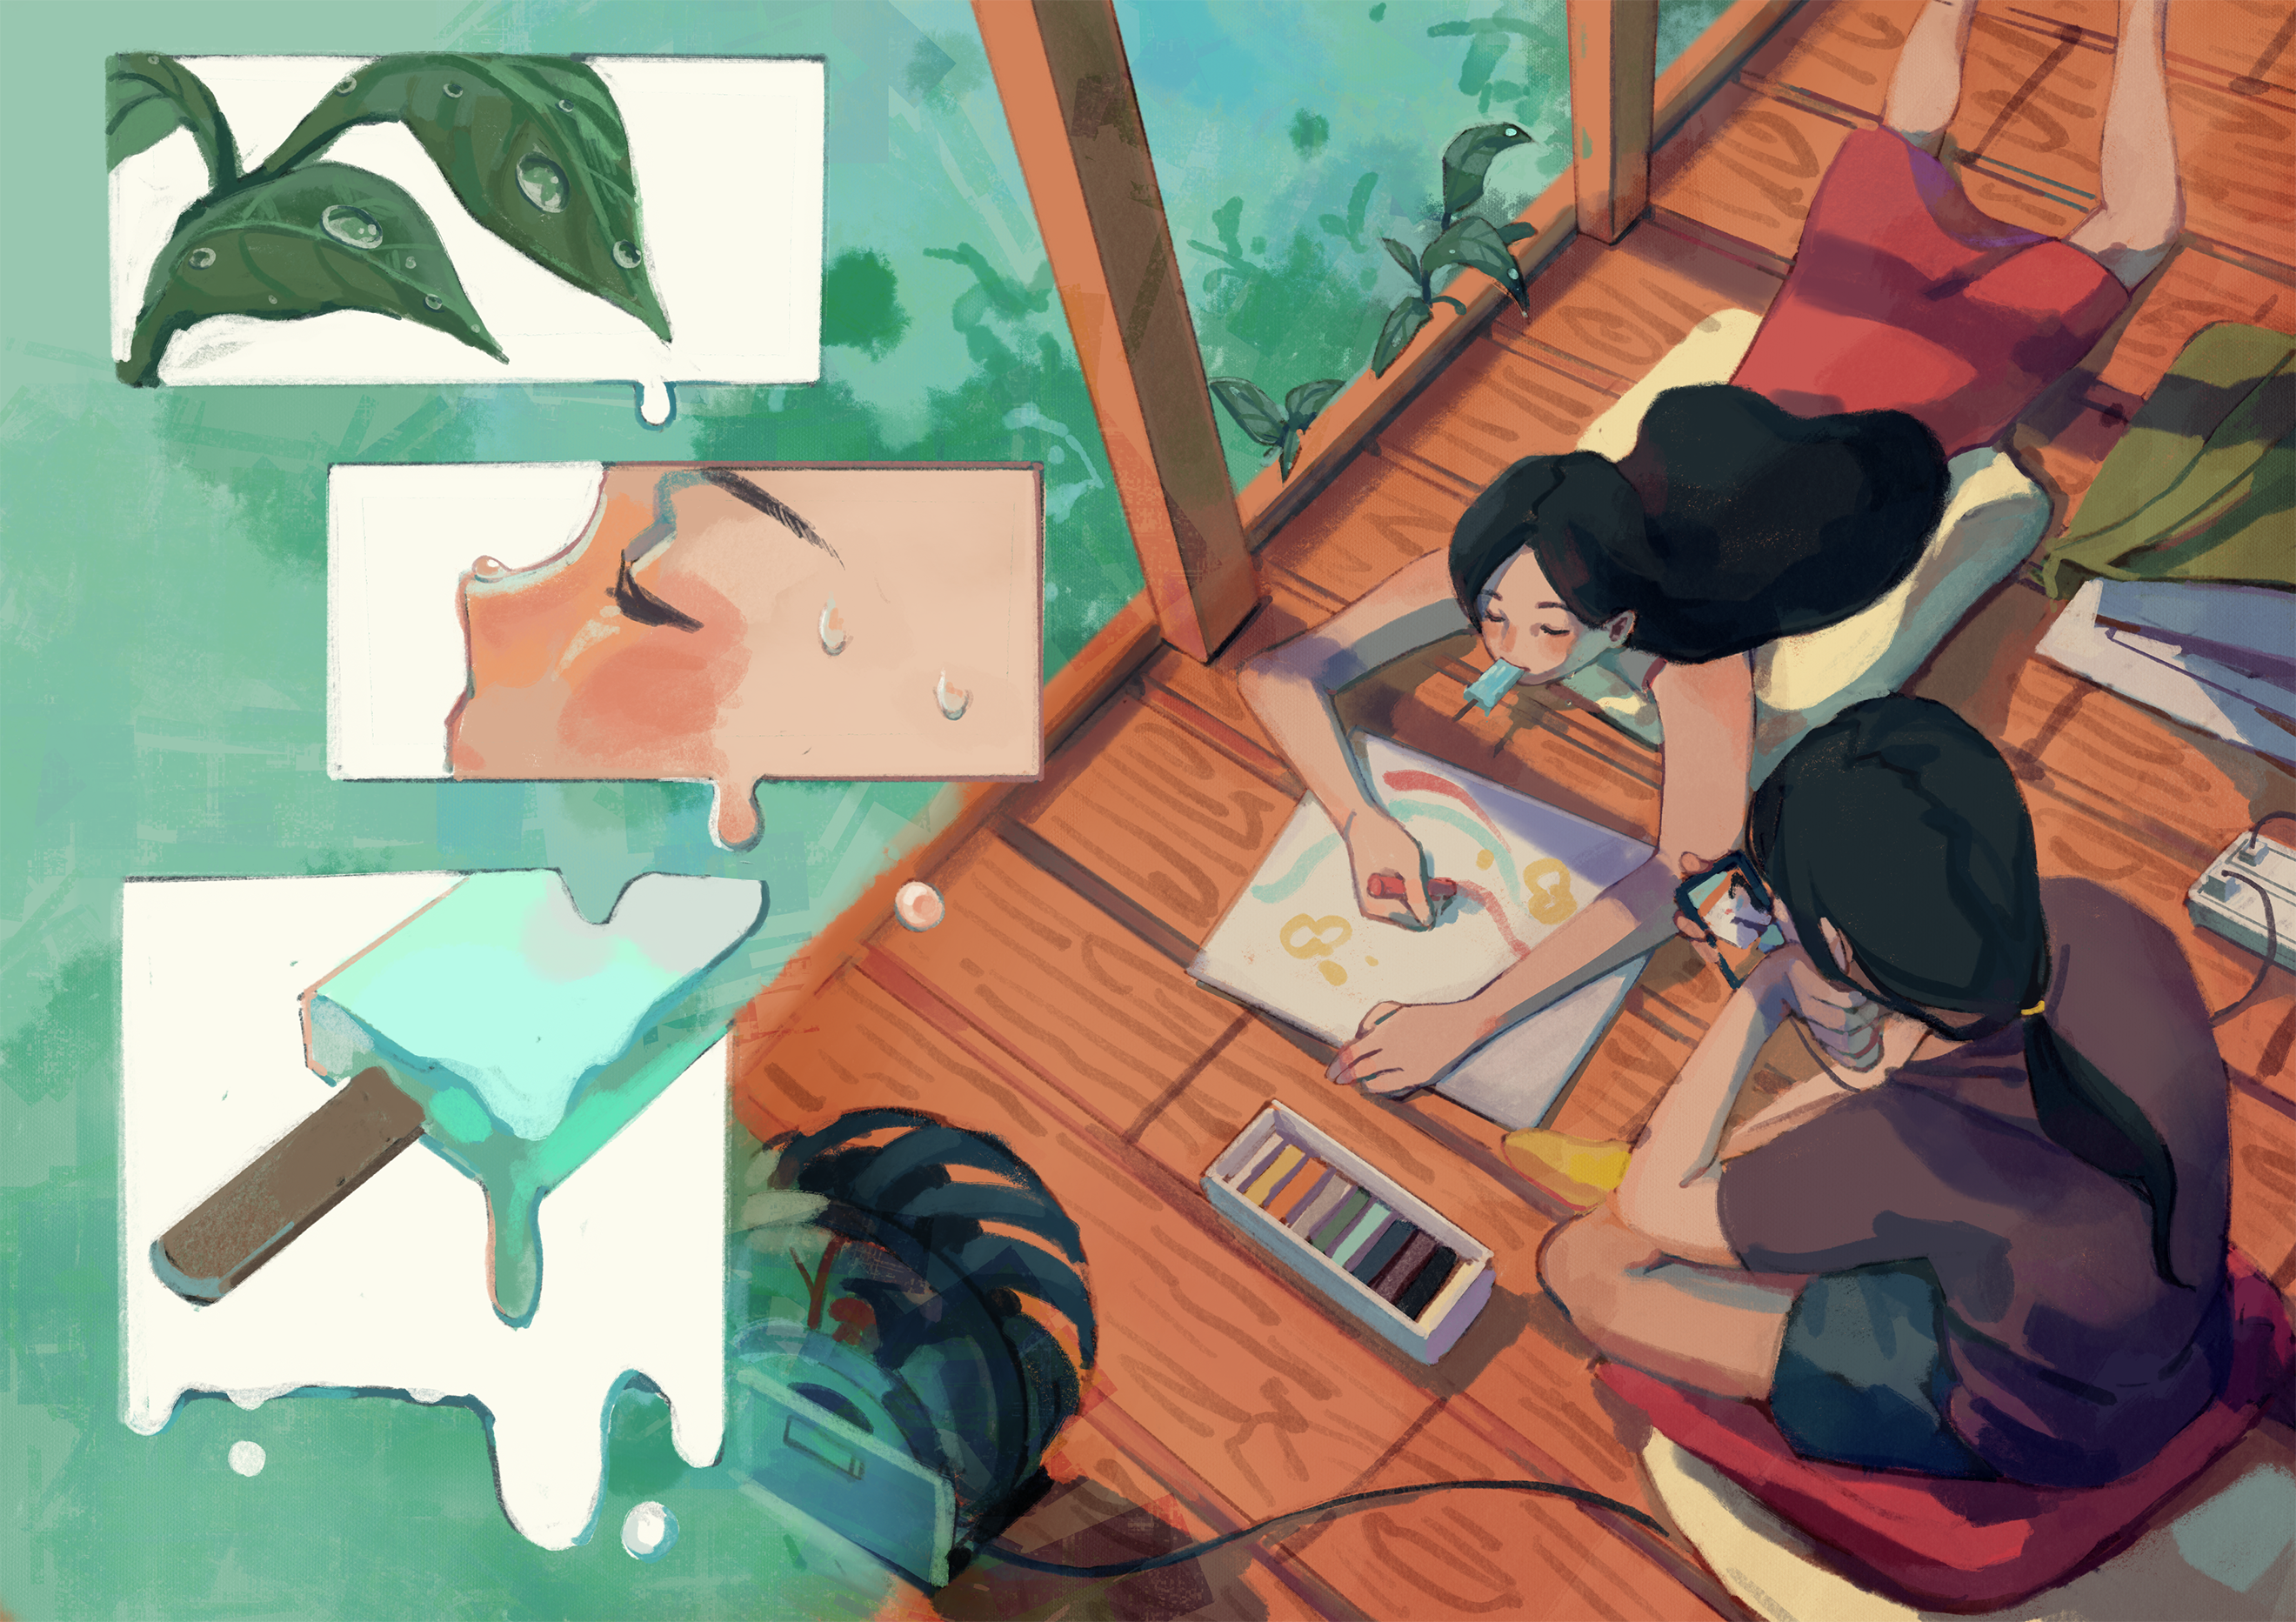 Digital Illustration about a girl and her friend chilling in summer time.